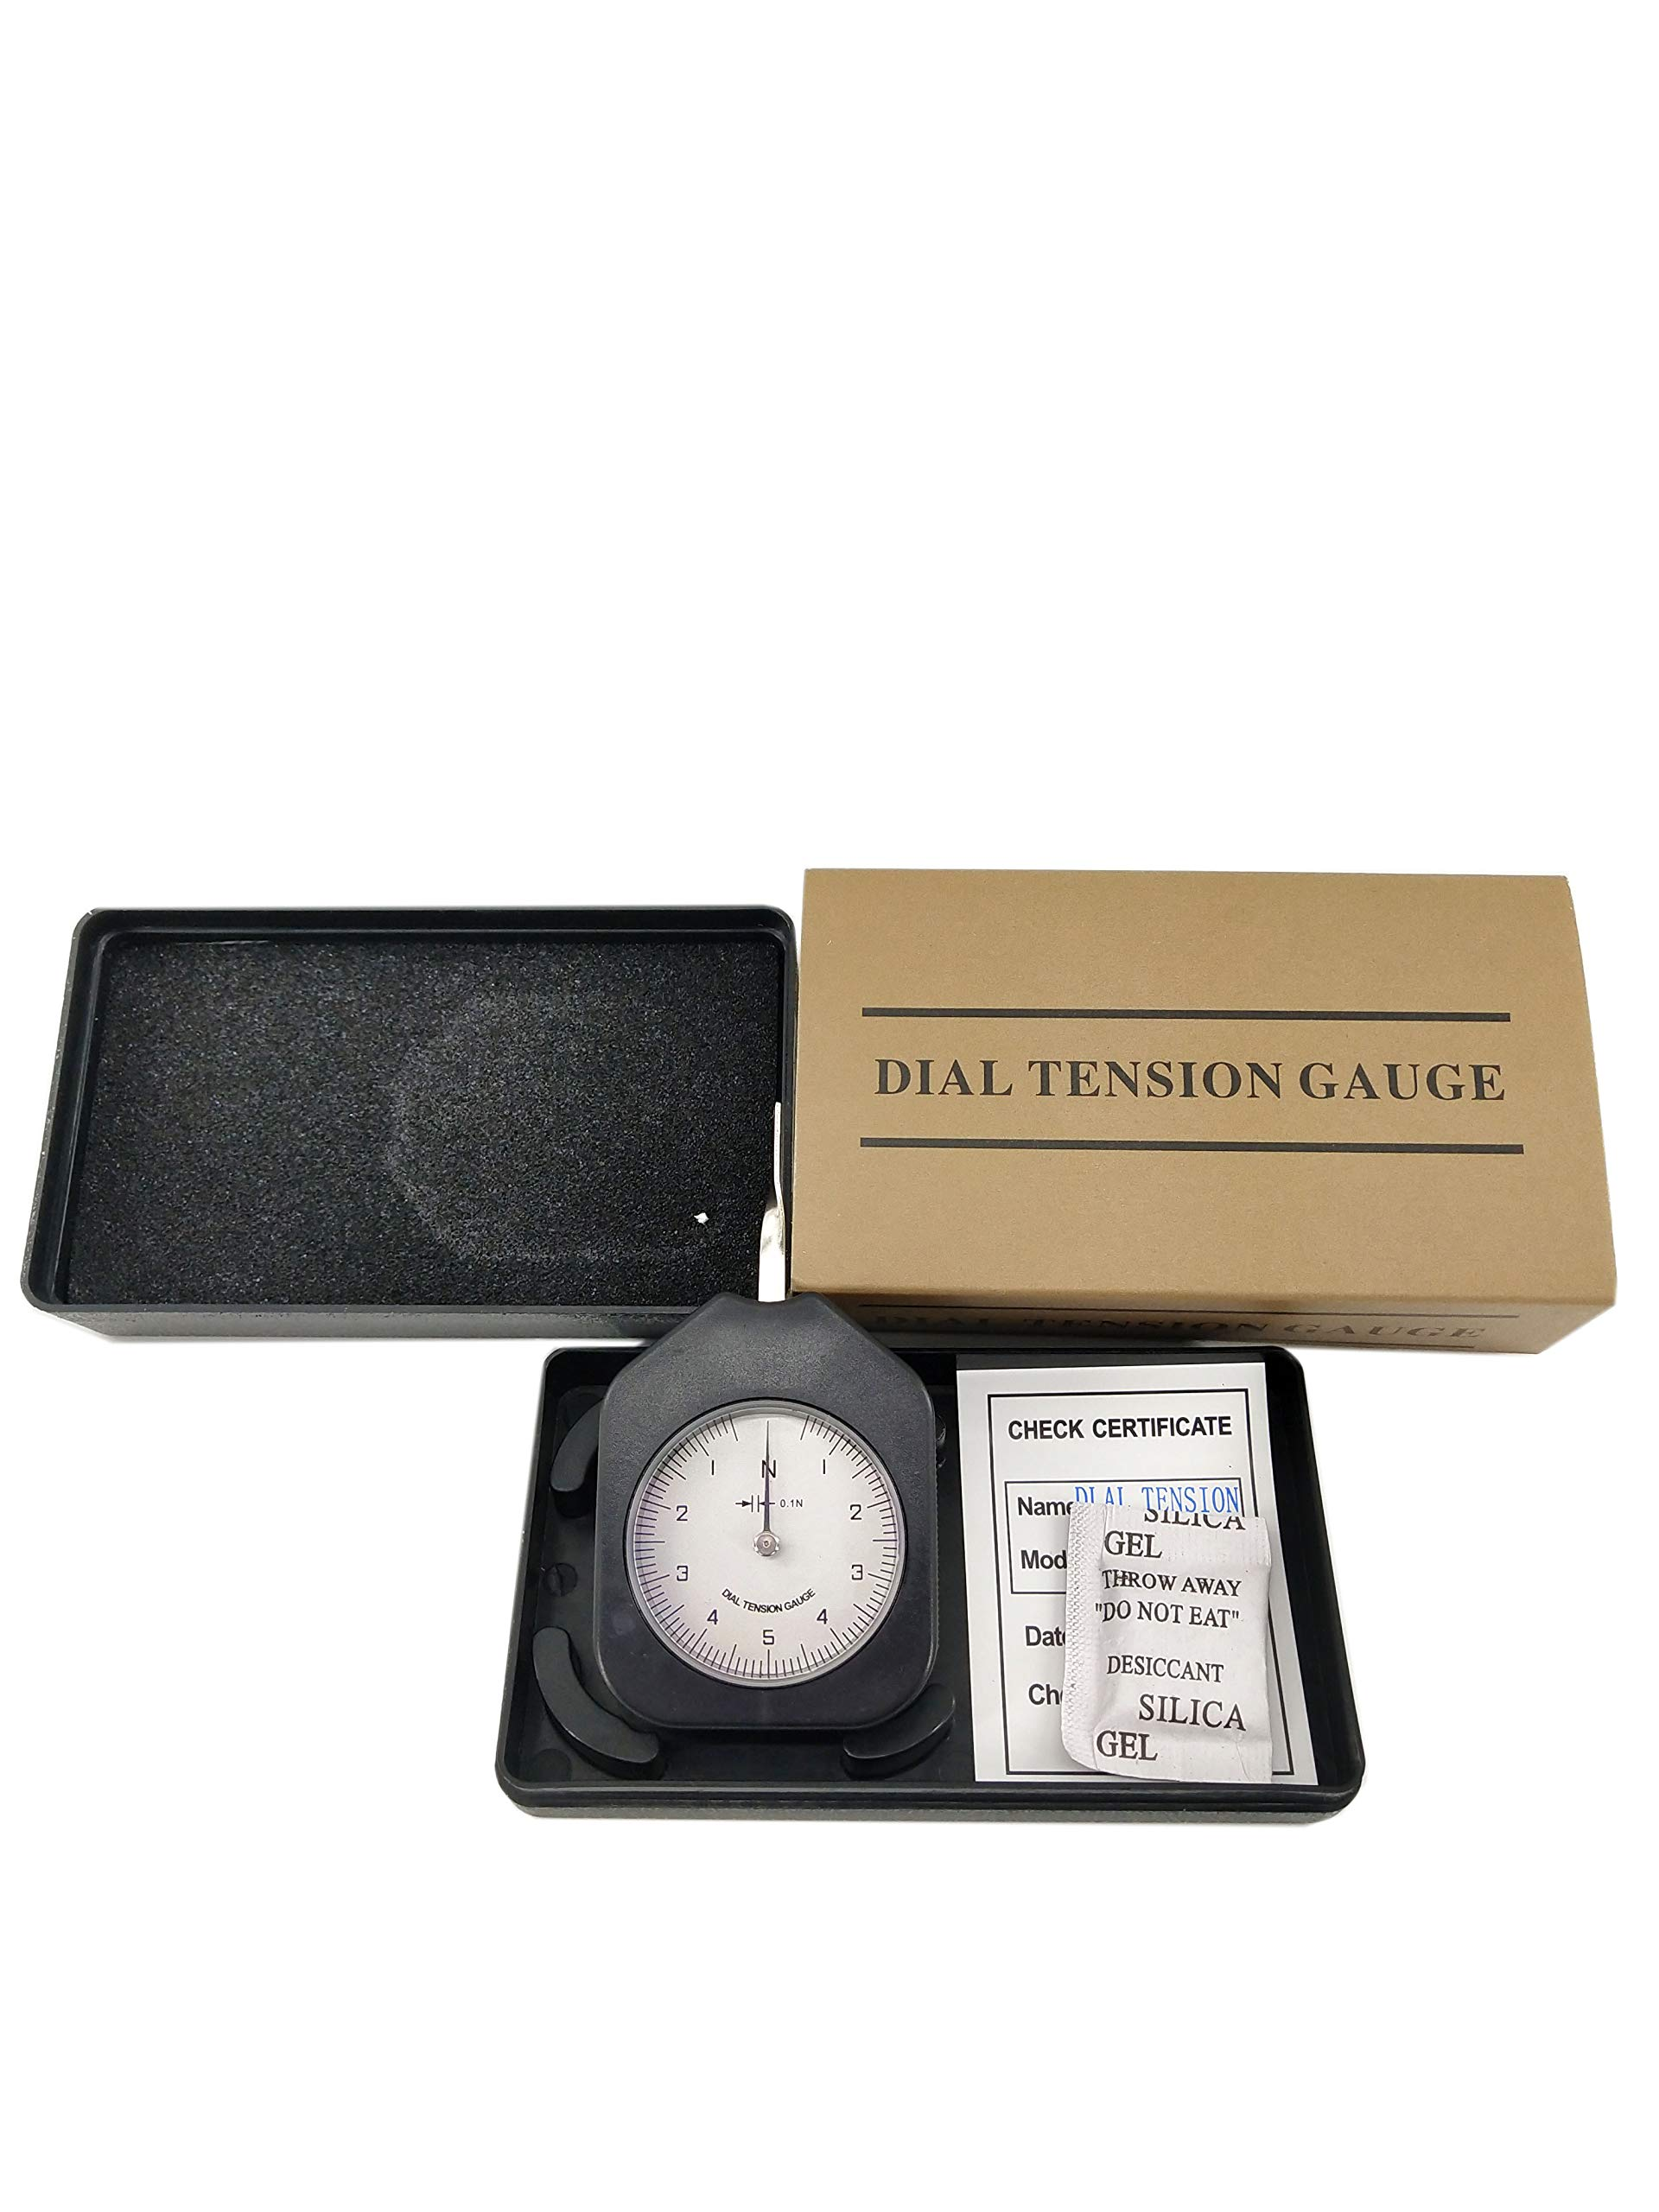 HFBTE ATN-5-1 Single Pointer Dial Tension Gauge Tensionmeter with 1-5-1N Measurement Range by HFBTE